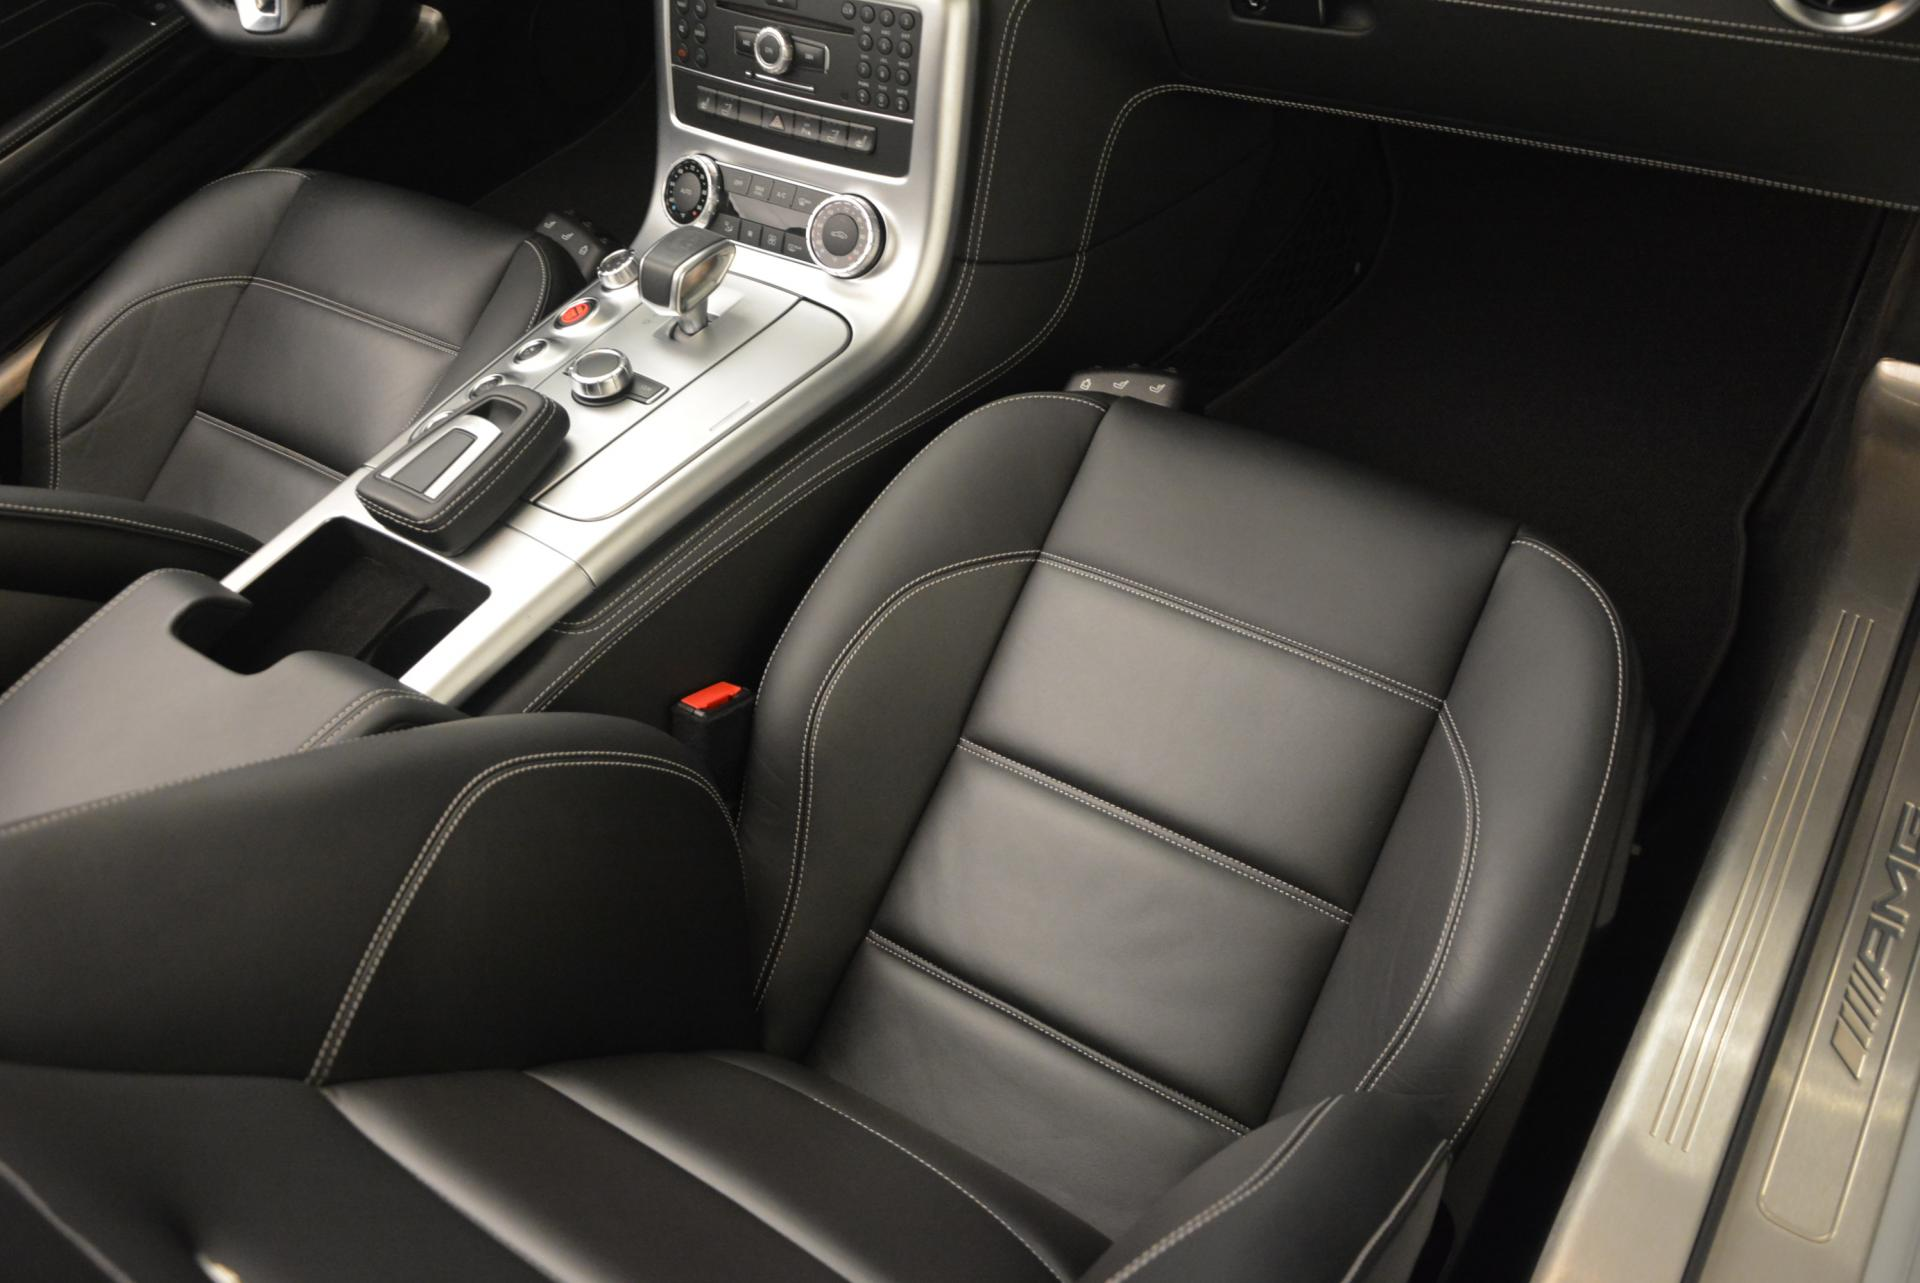 Used 2012 Mercedes Benz SLS AMG  For Sale In Greenwich, CT. Alfa Romeo of Greenwich, 7058 517_p36